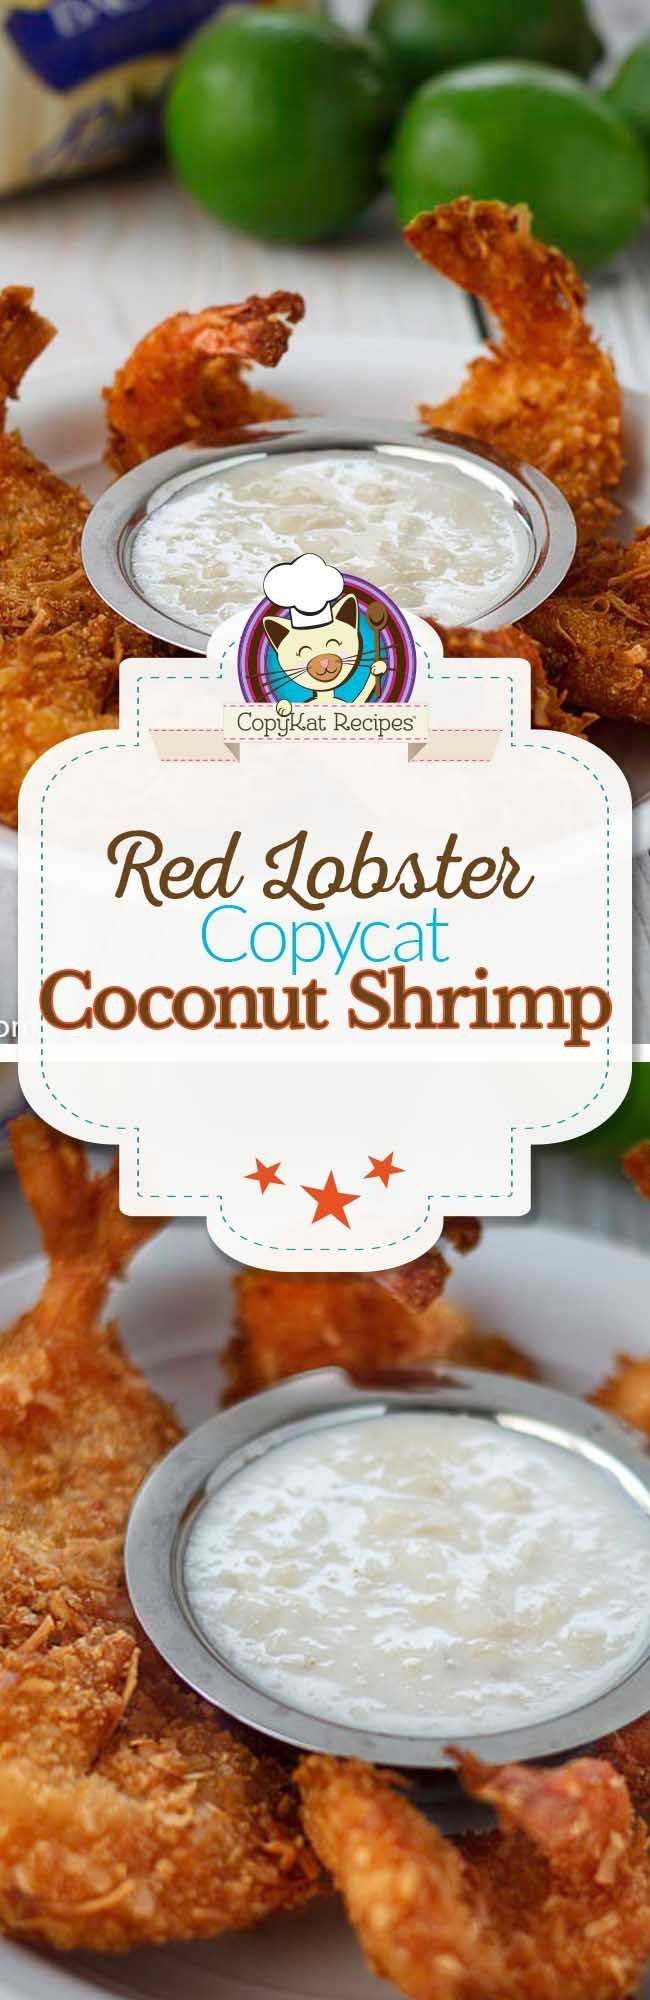 Red Lobster Parrot Bay Coconut Shrimp Recipe Seafood